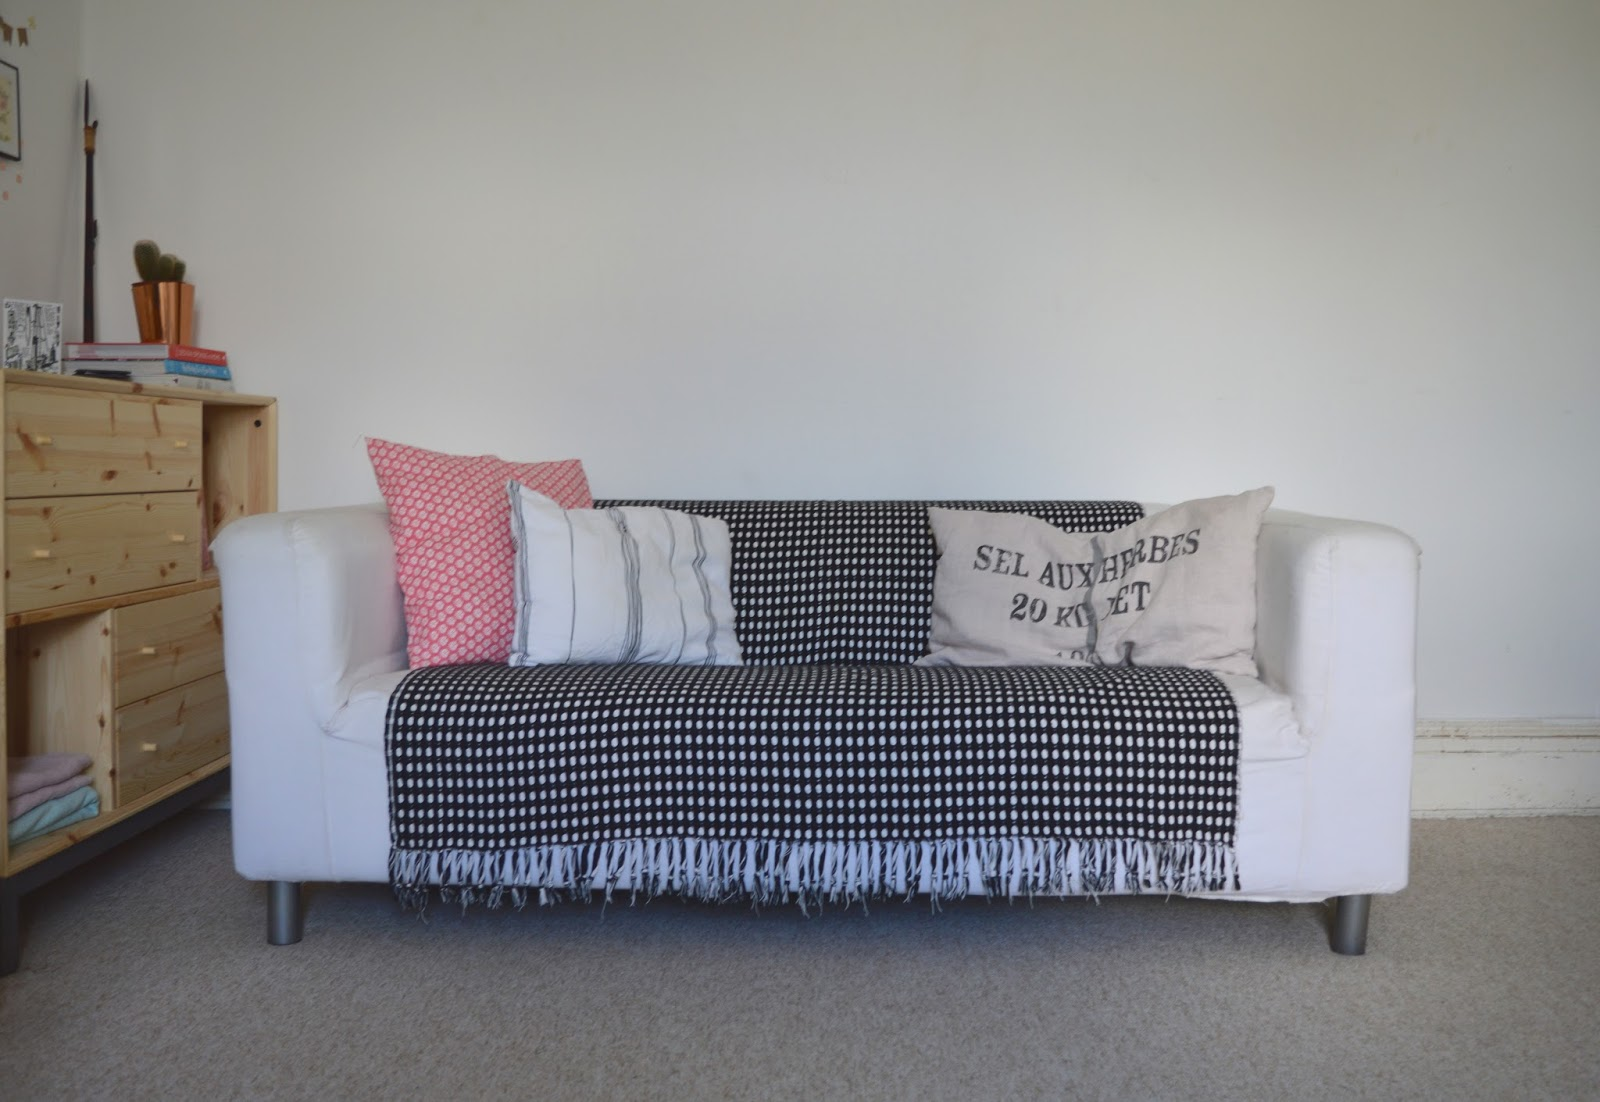 3 STEPS TO UPDATE AN OLD SOFA